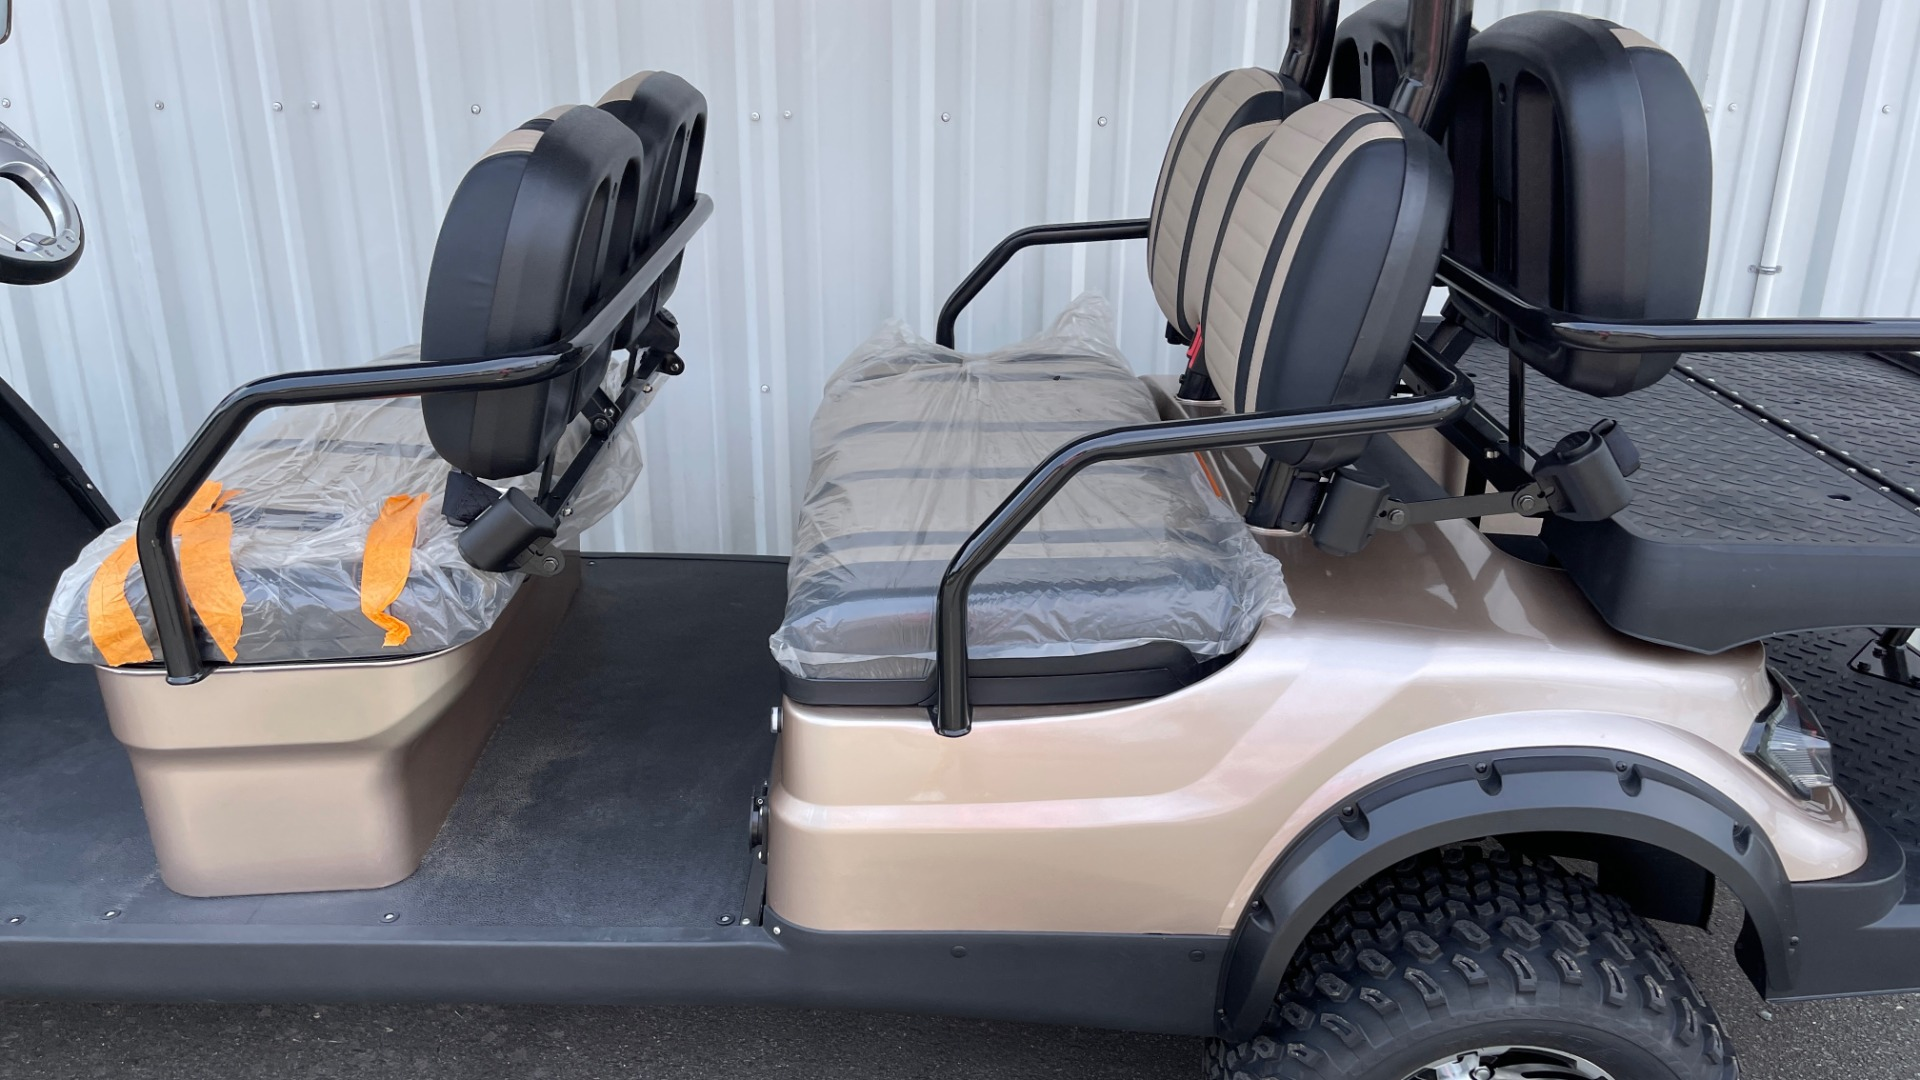 Used 2021 ICON I60L LIFTED ELECTRIC CAR / 6-PASSENGER GOLF CART / 25MPH / NEW / 1-MILE for sale $11,399 at Formula Imports in Charlotte NC 28227 33